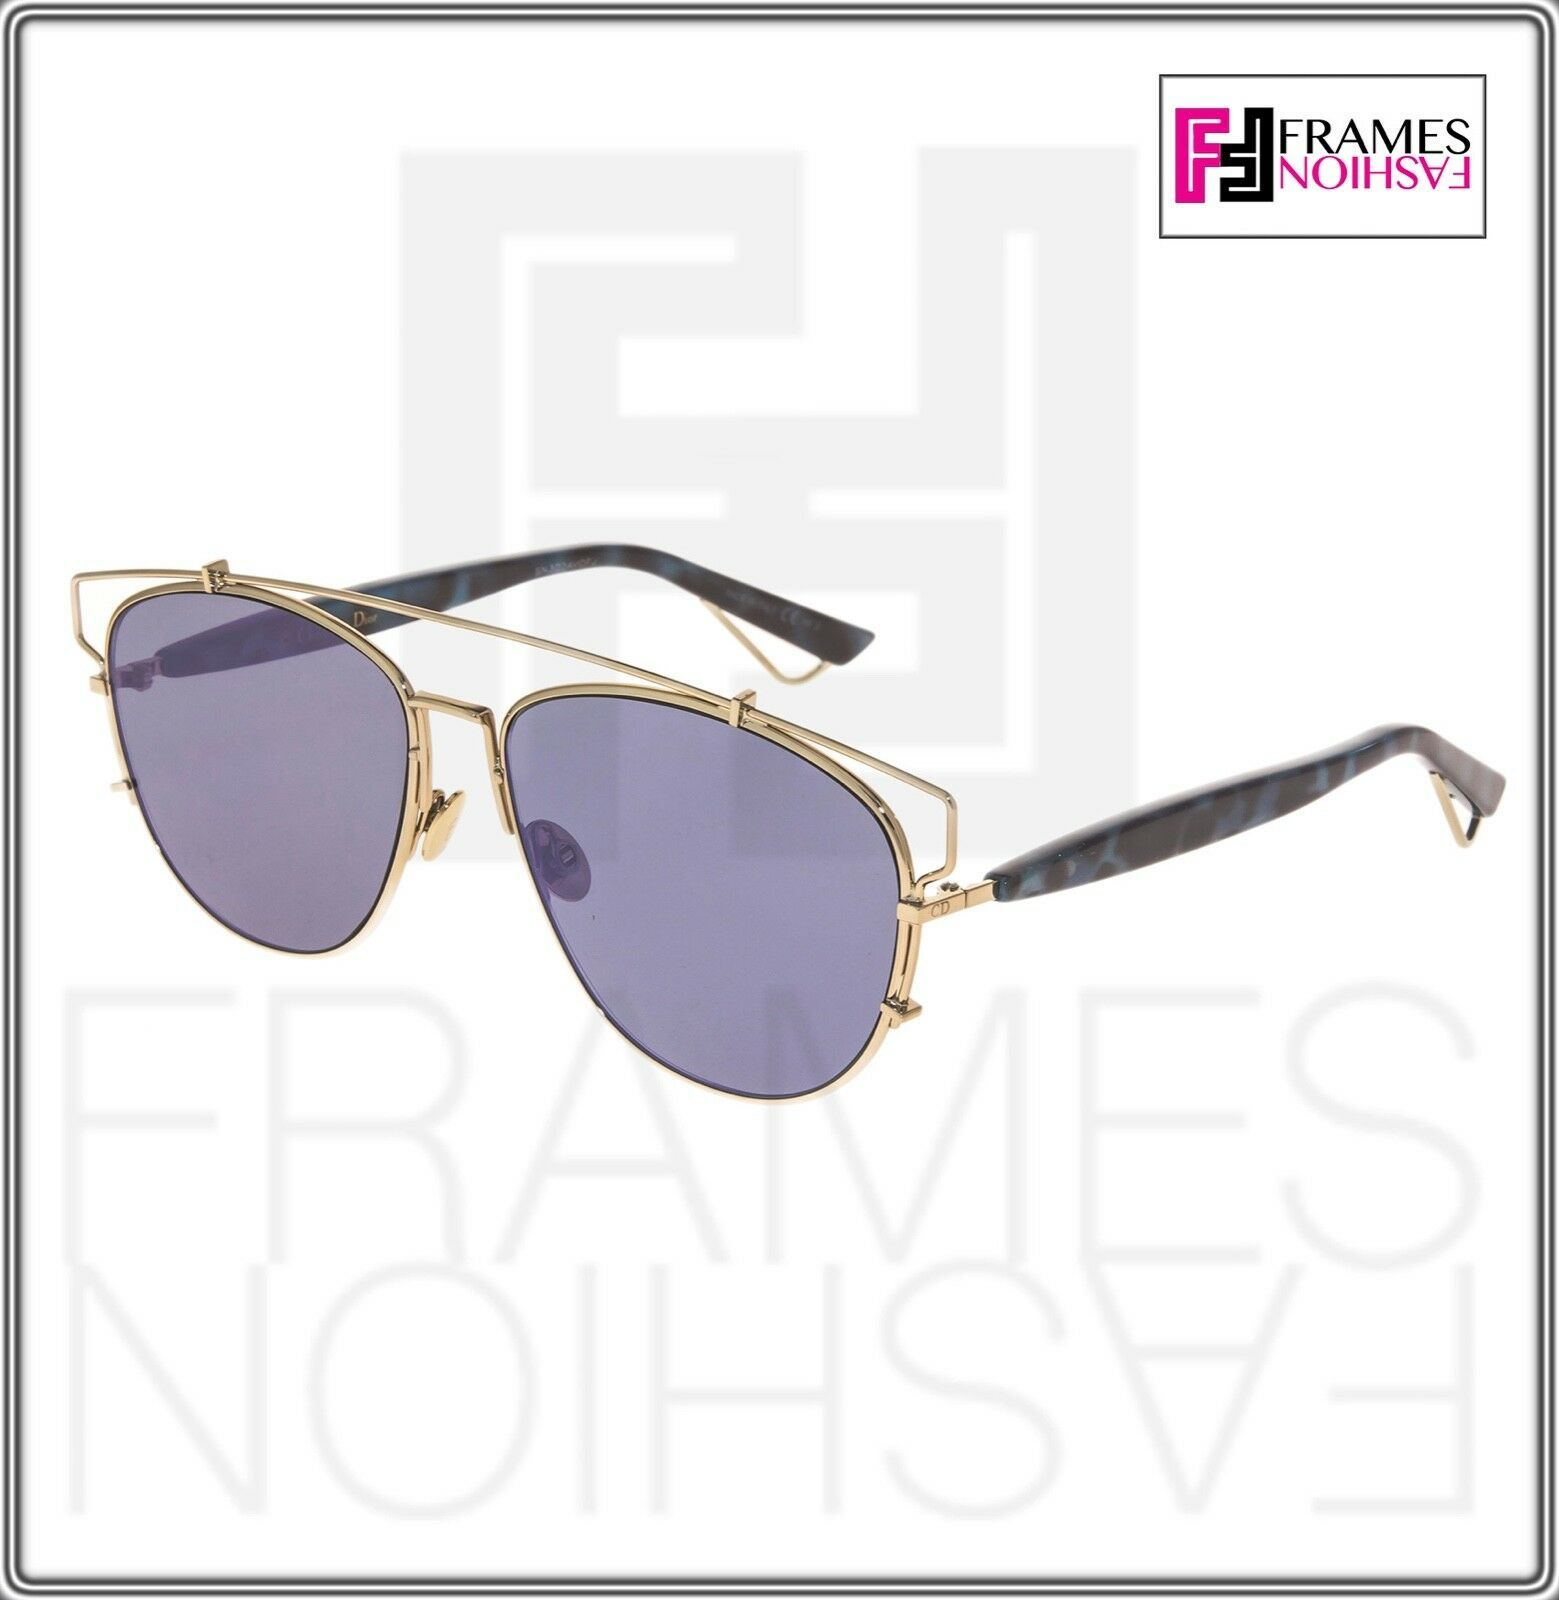 CHRISTIAN DIOR TECHNOLOGIC Gold Spotted Blue Lilac Flat Mirrored Sunglass Unisex